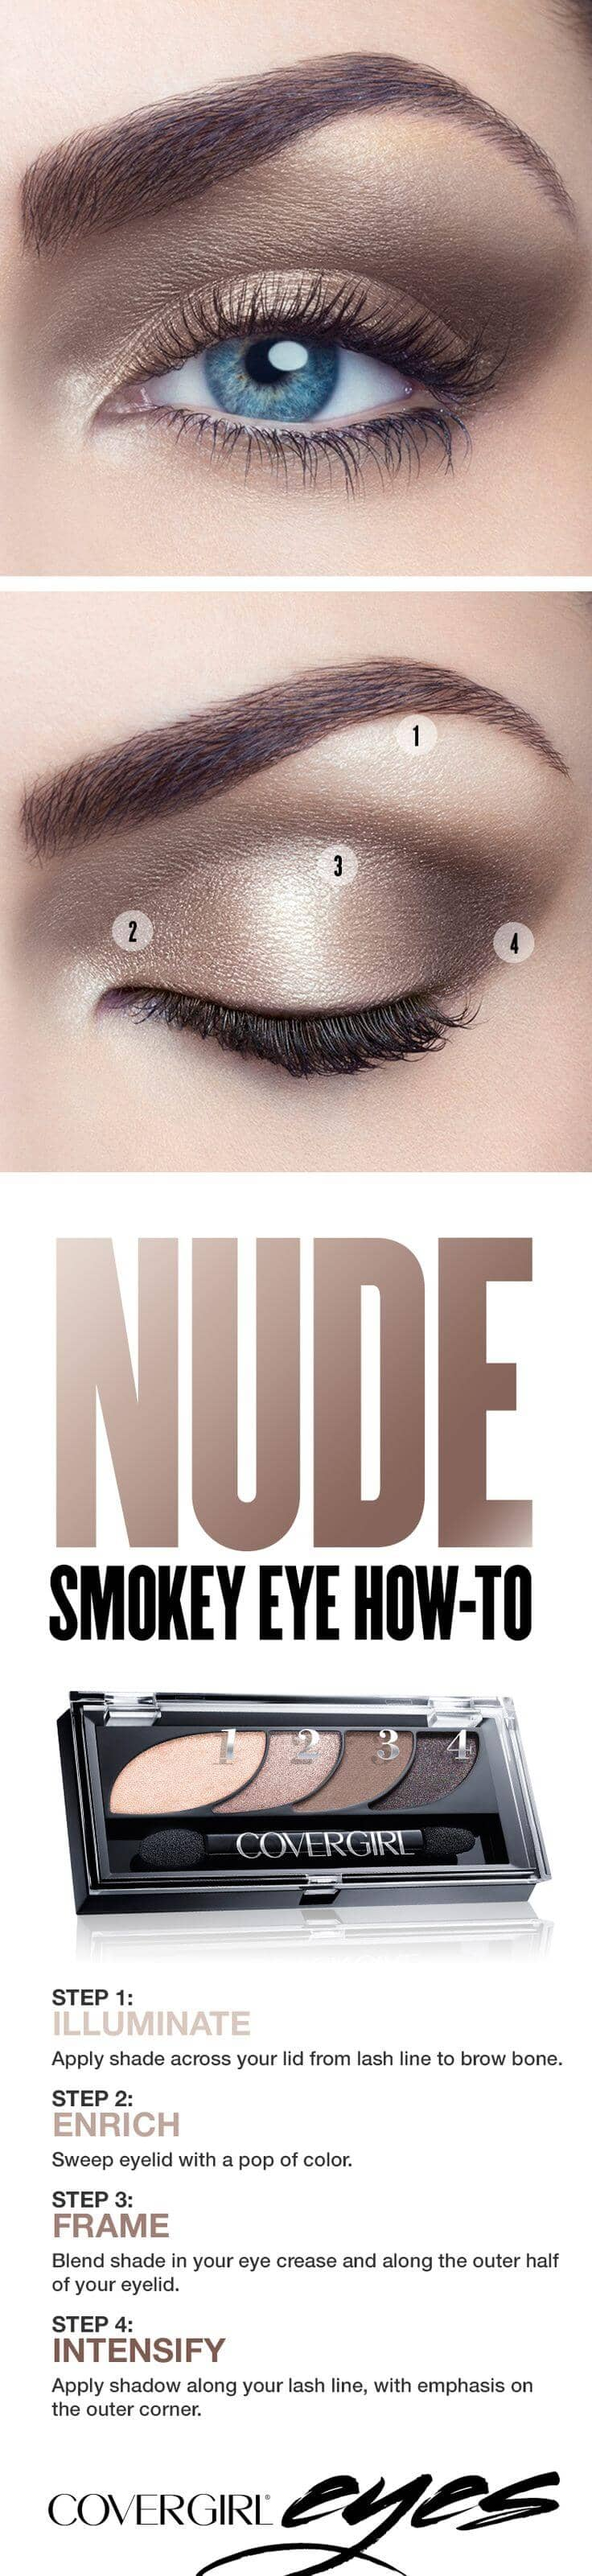 Nude Hued Smokey Eye Tutorial